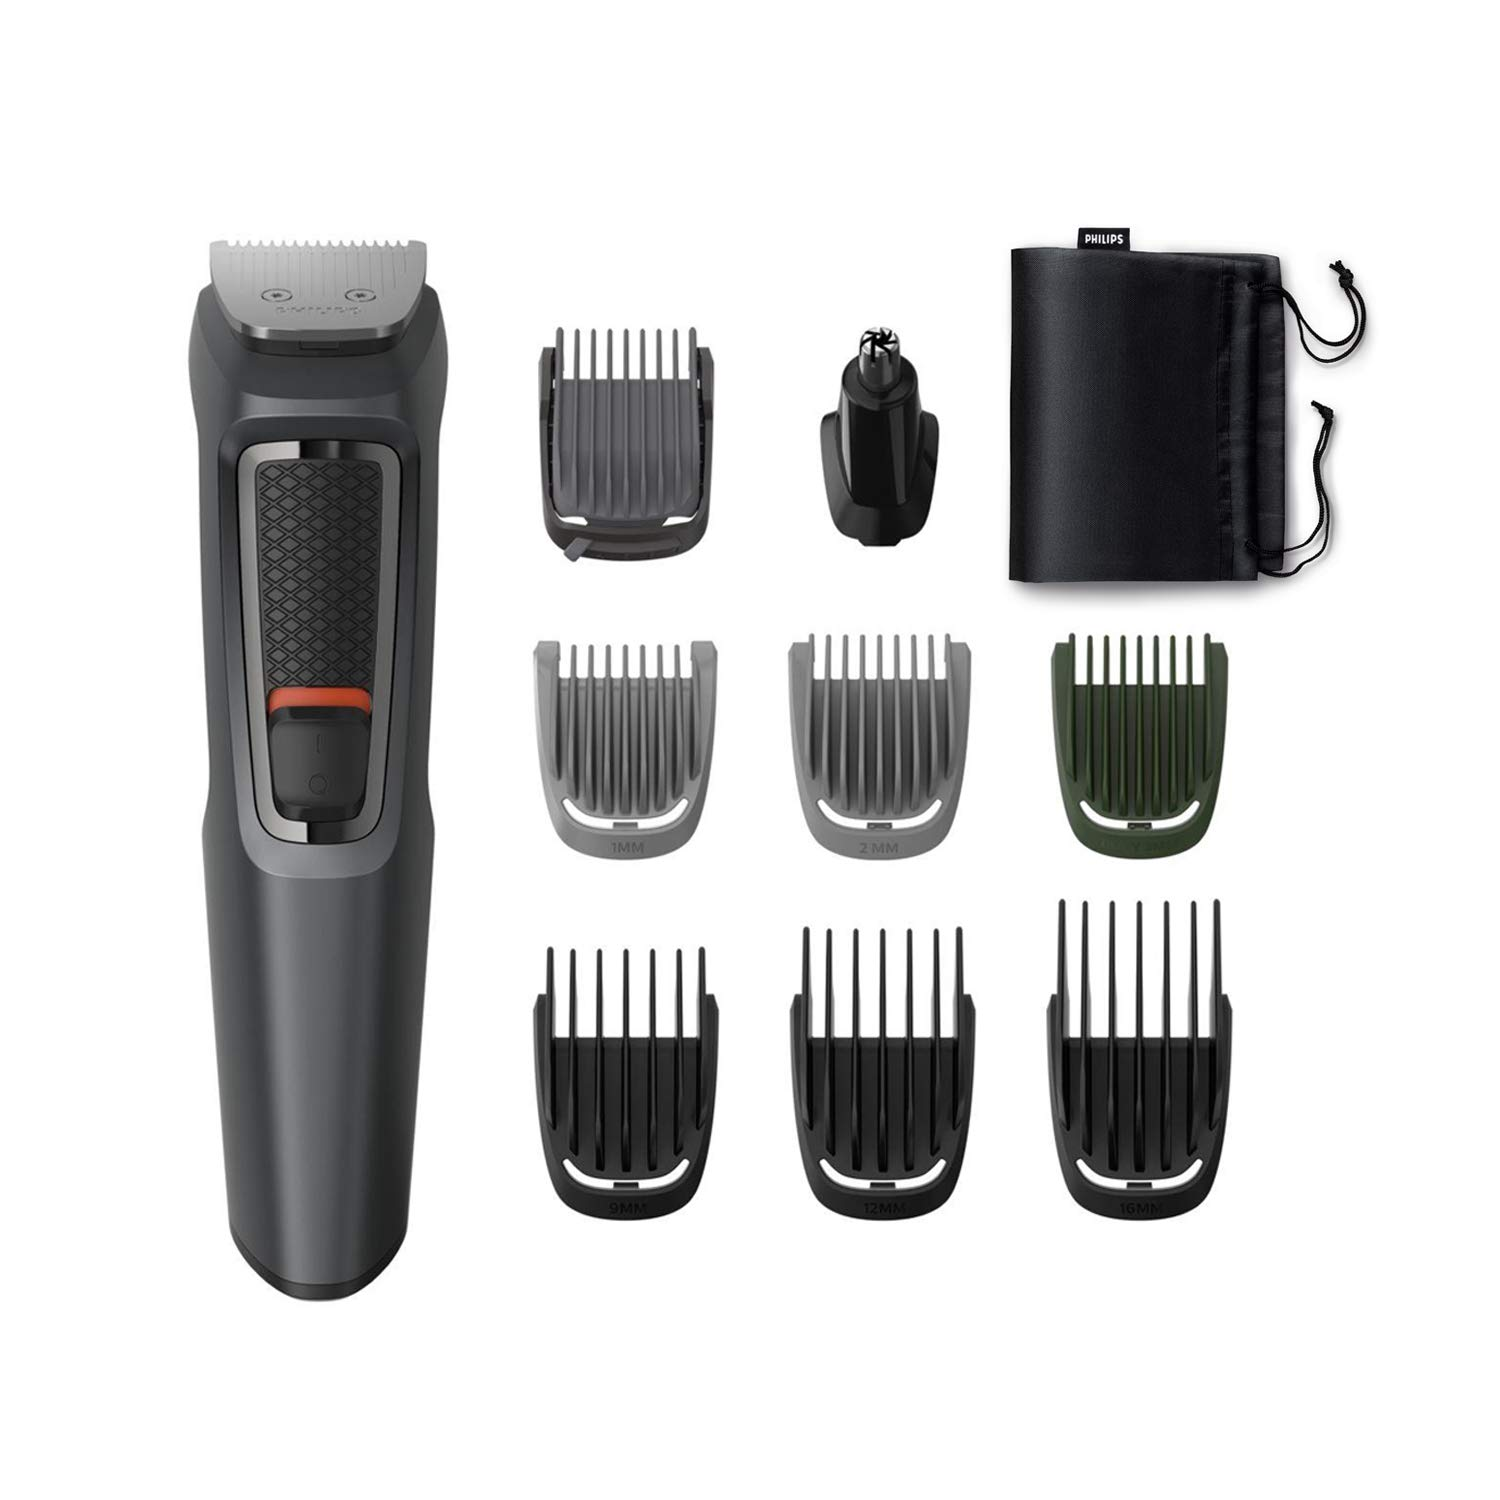 Philips MG3747/15, 9-in-1, Face, Hair and Body – Multi Grooming Kit. Self Sharpening Stainless Steel Blades, No Oil Needed, 70 Mins Run Time (Black)